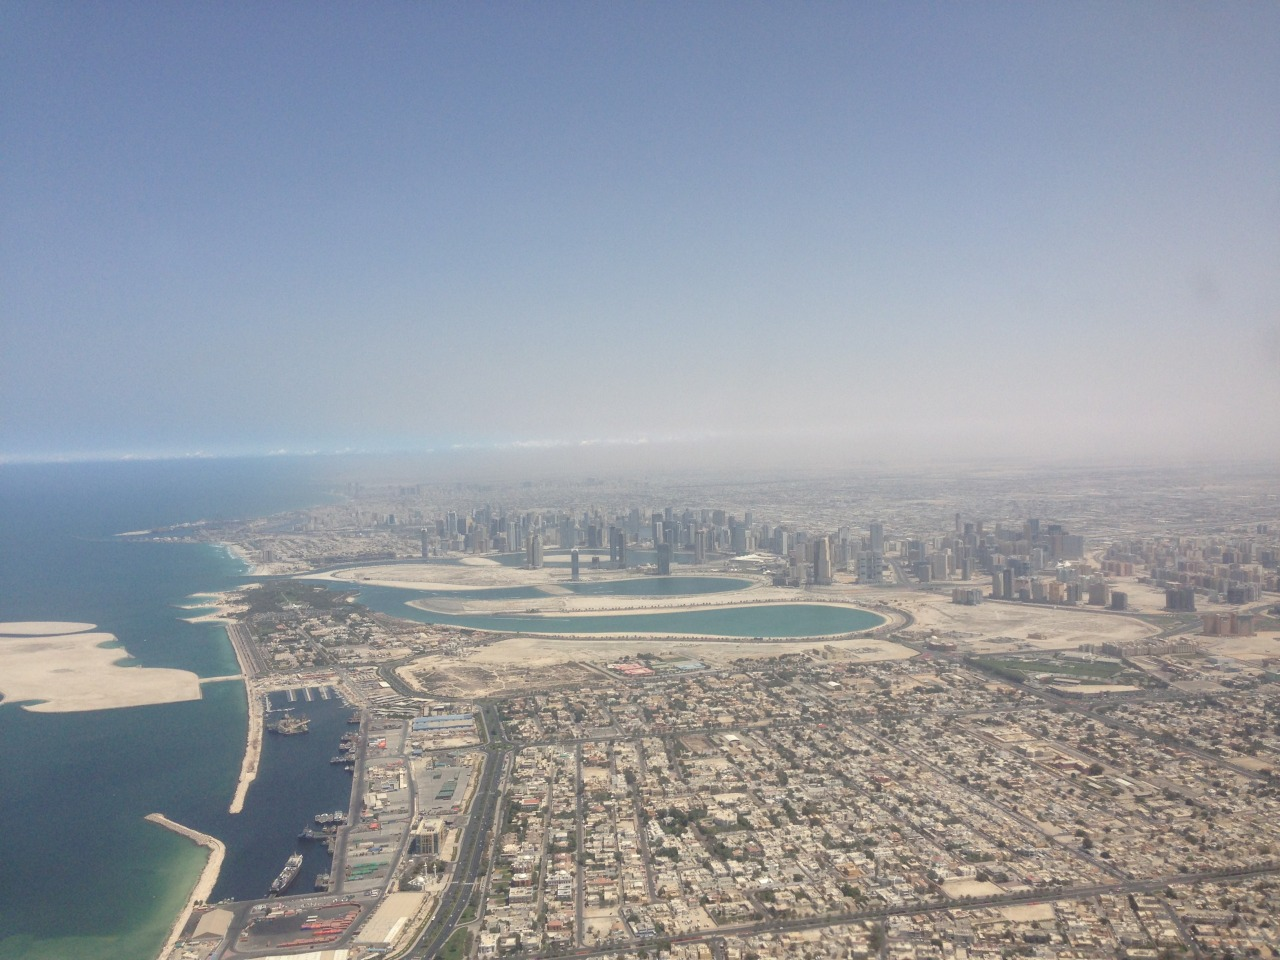 Stunning view over Dubai during our travels a few weeks ago.